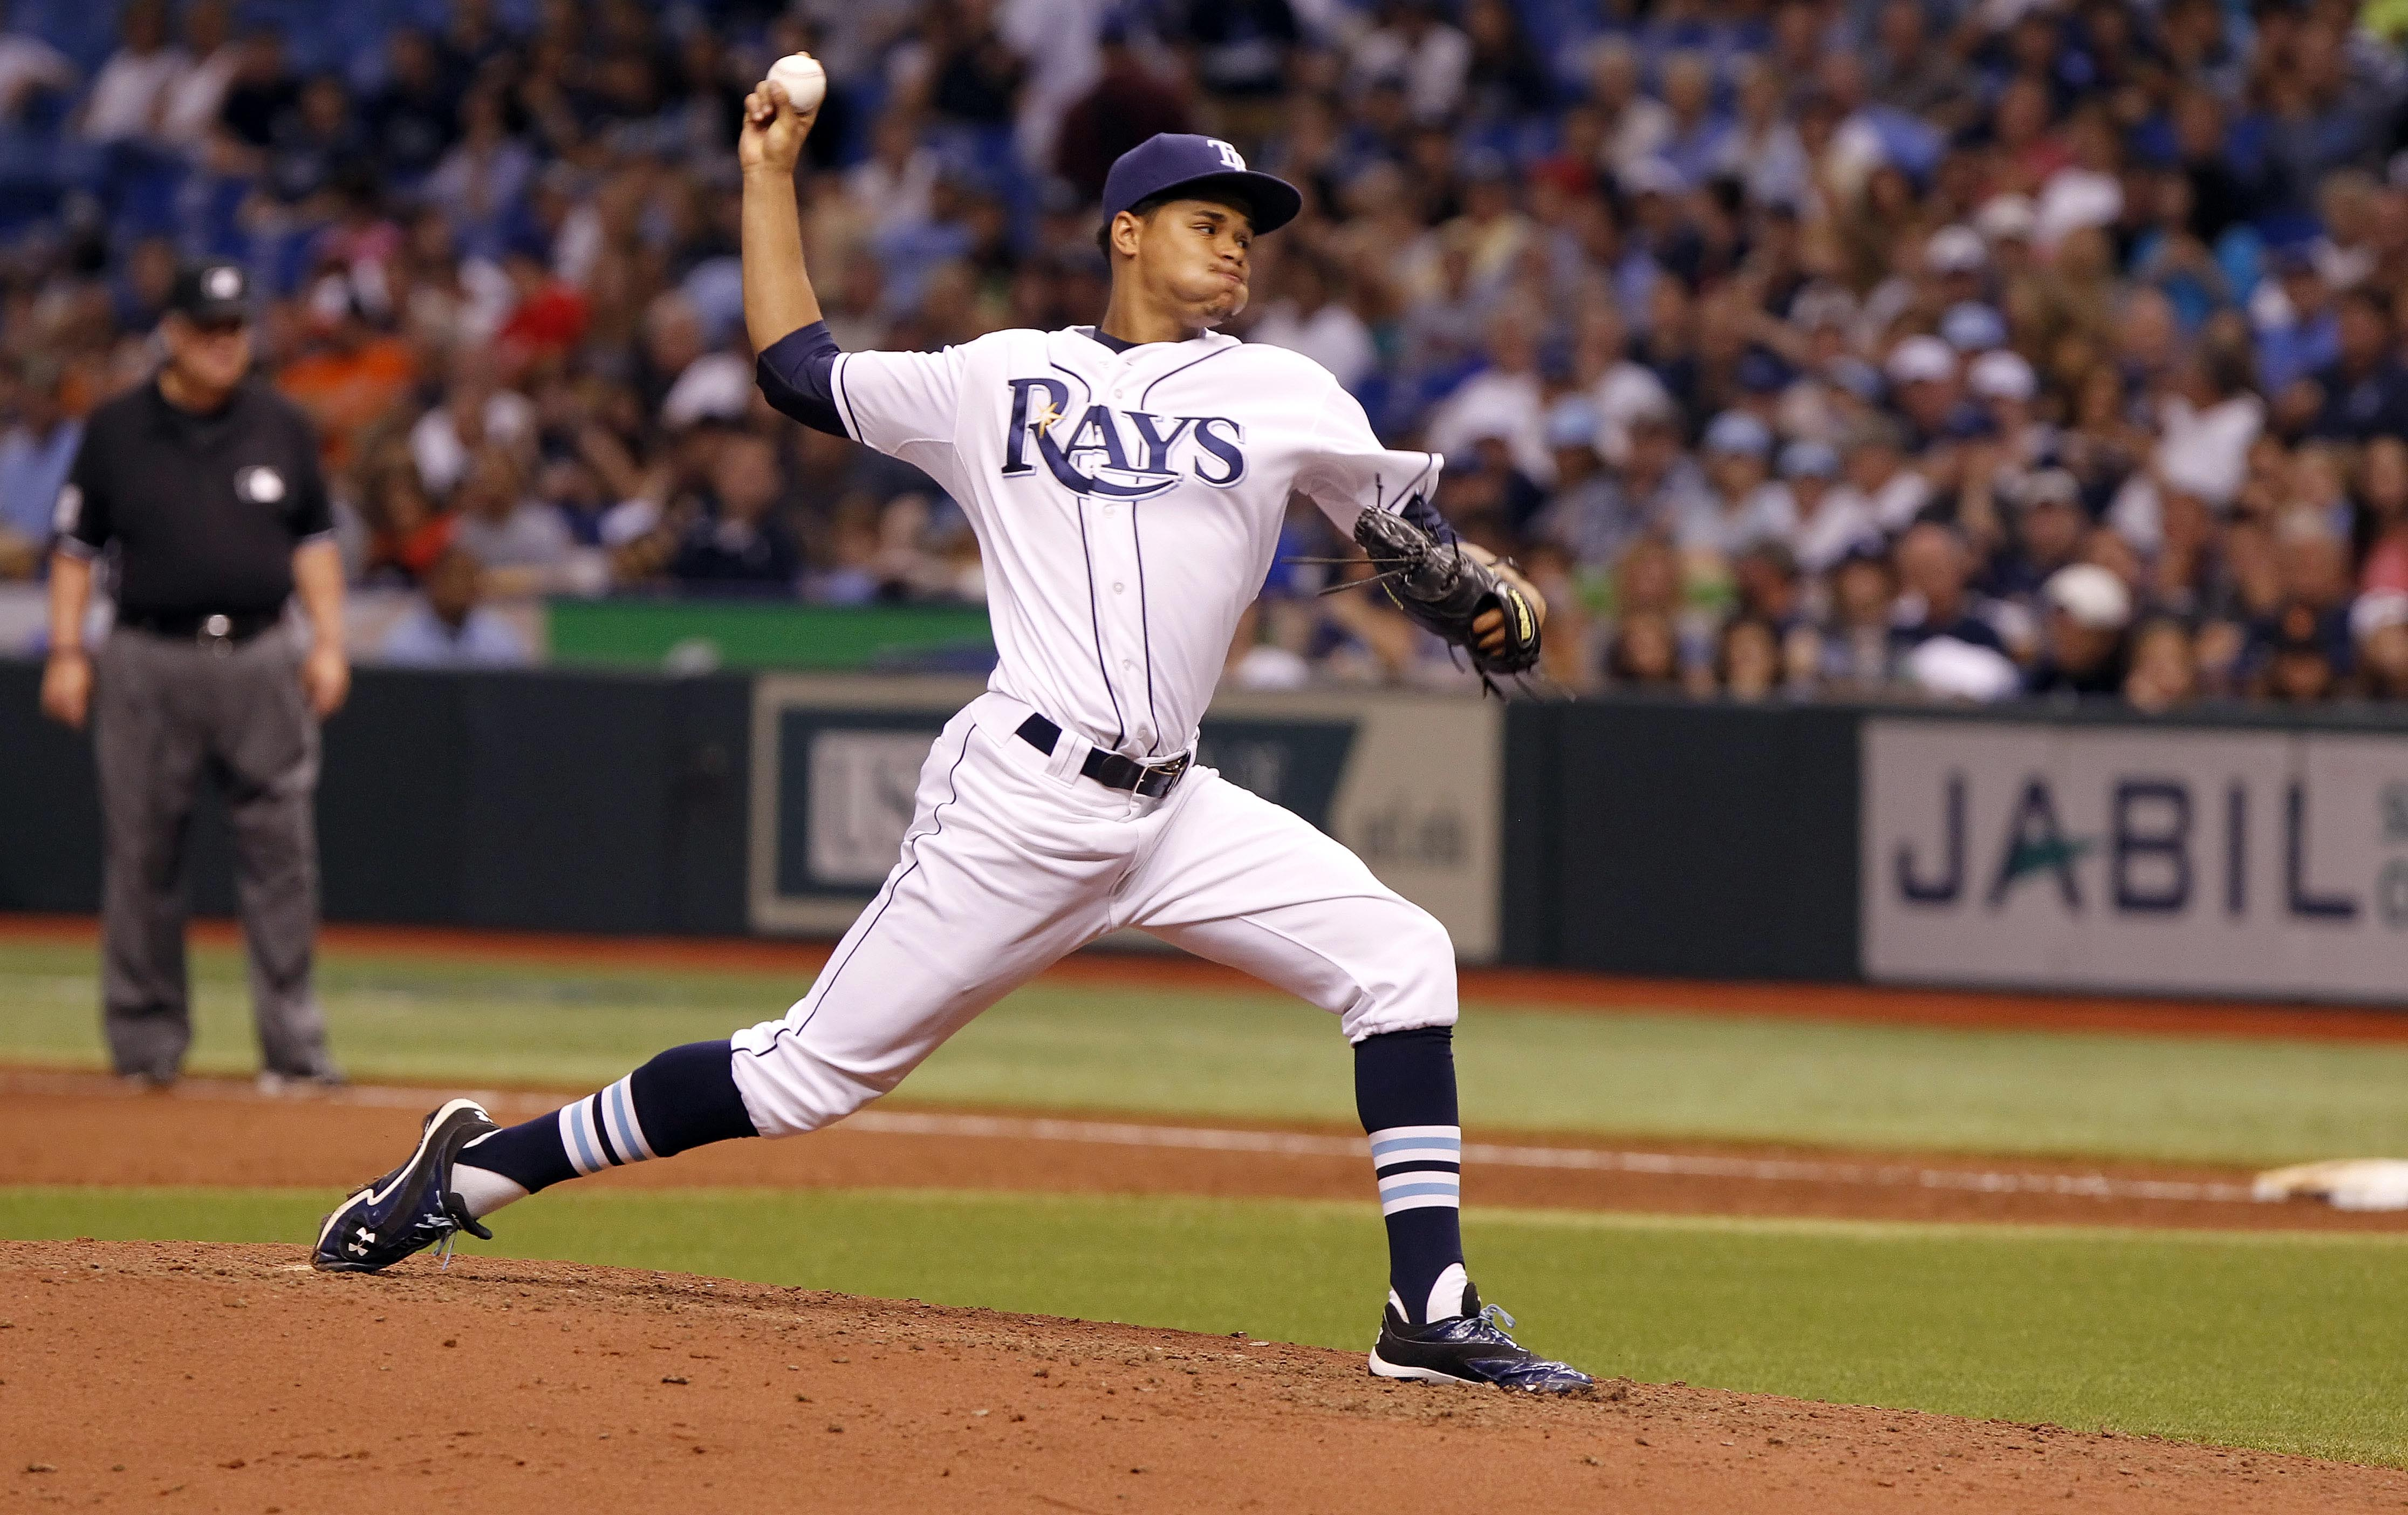 Chris Archer of the Tampa Bay Rays a young pitcher with All-Star future potential (photo Kim Klement-USA TODAY Sports)